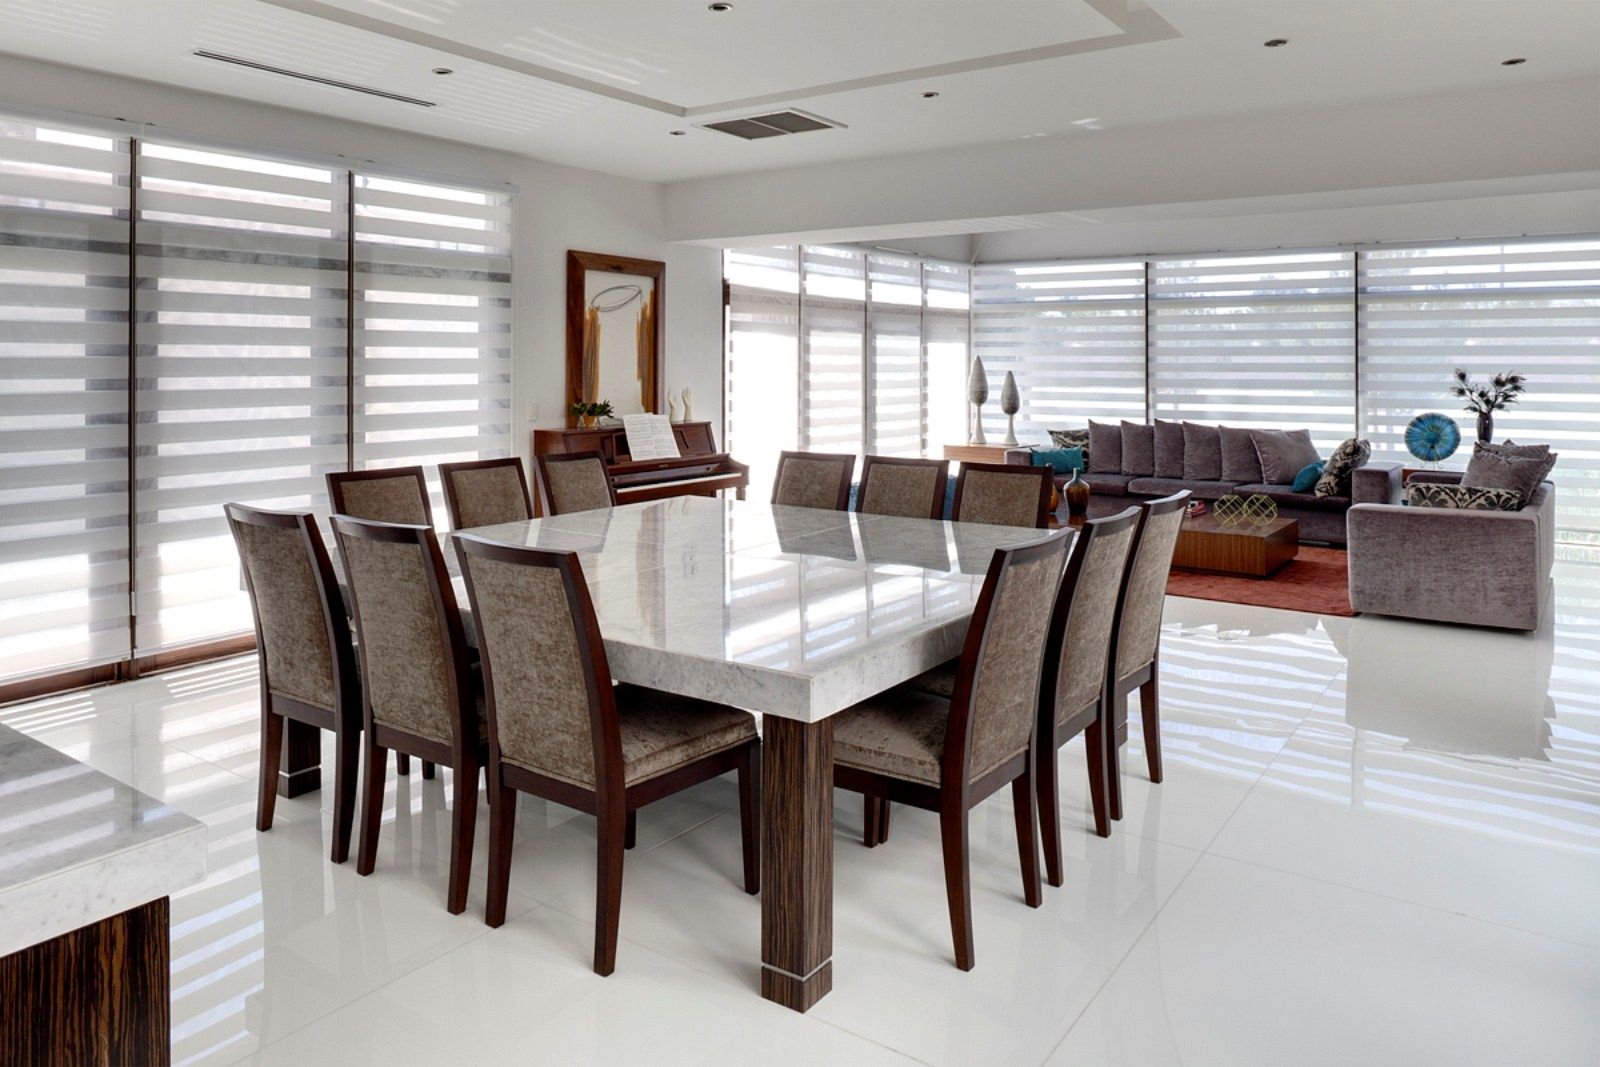 Large Square Dining Table Seats | Sala de Jantar | Pinterest ...